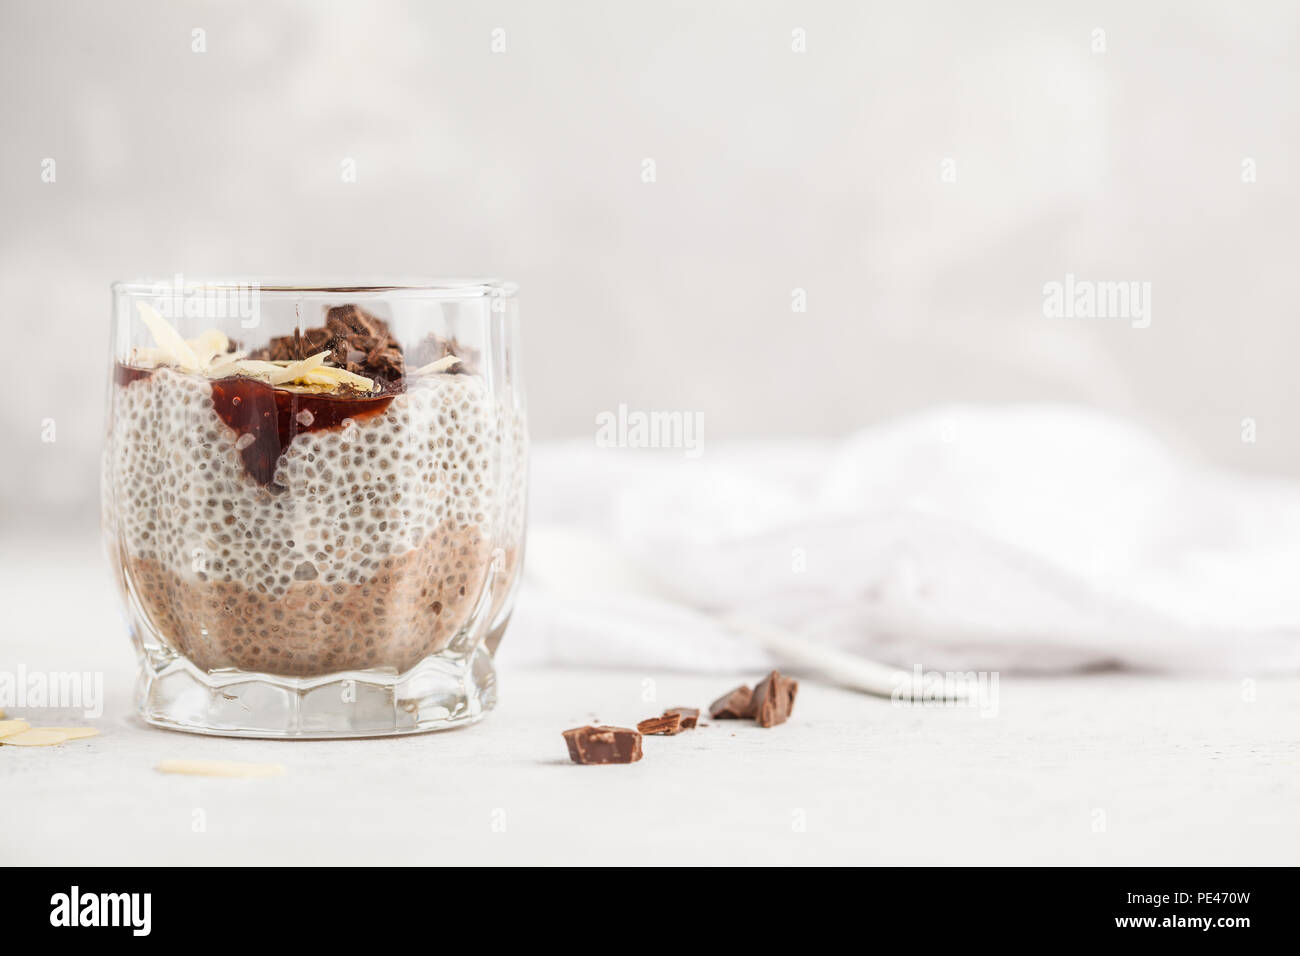 Chia pudding with chocolate, almonds and berry jam, white background. Raw vegan dessert. Clean eating concept. - Stock Image